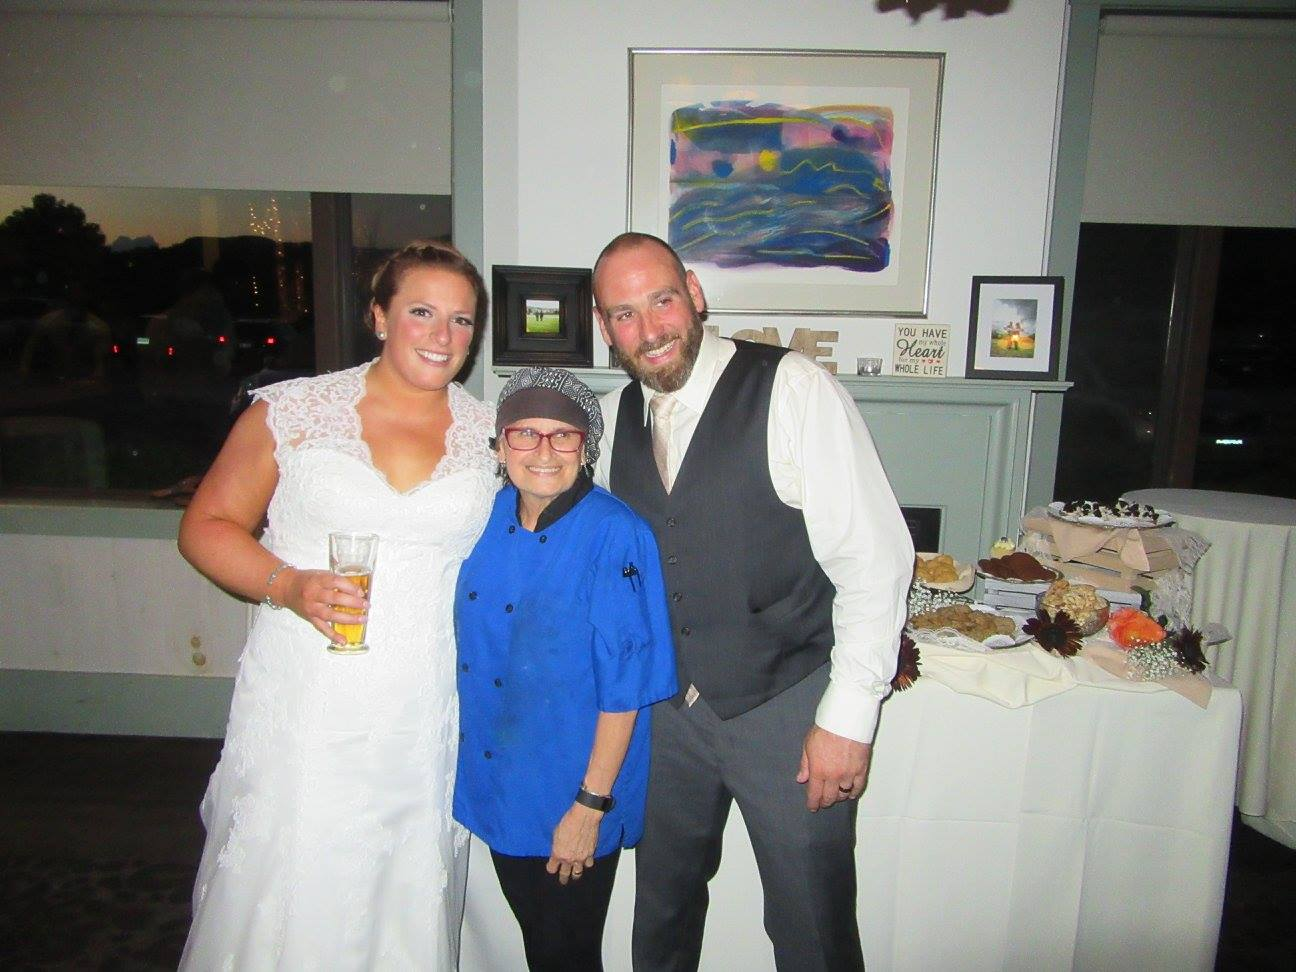 Chef Odille with the newlyweds and her famous Crissey Farm Petite Dessert Display.